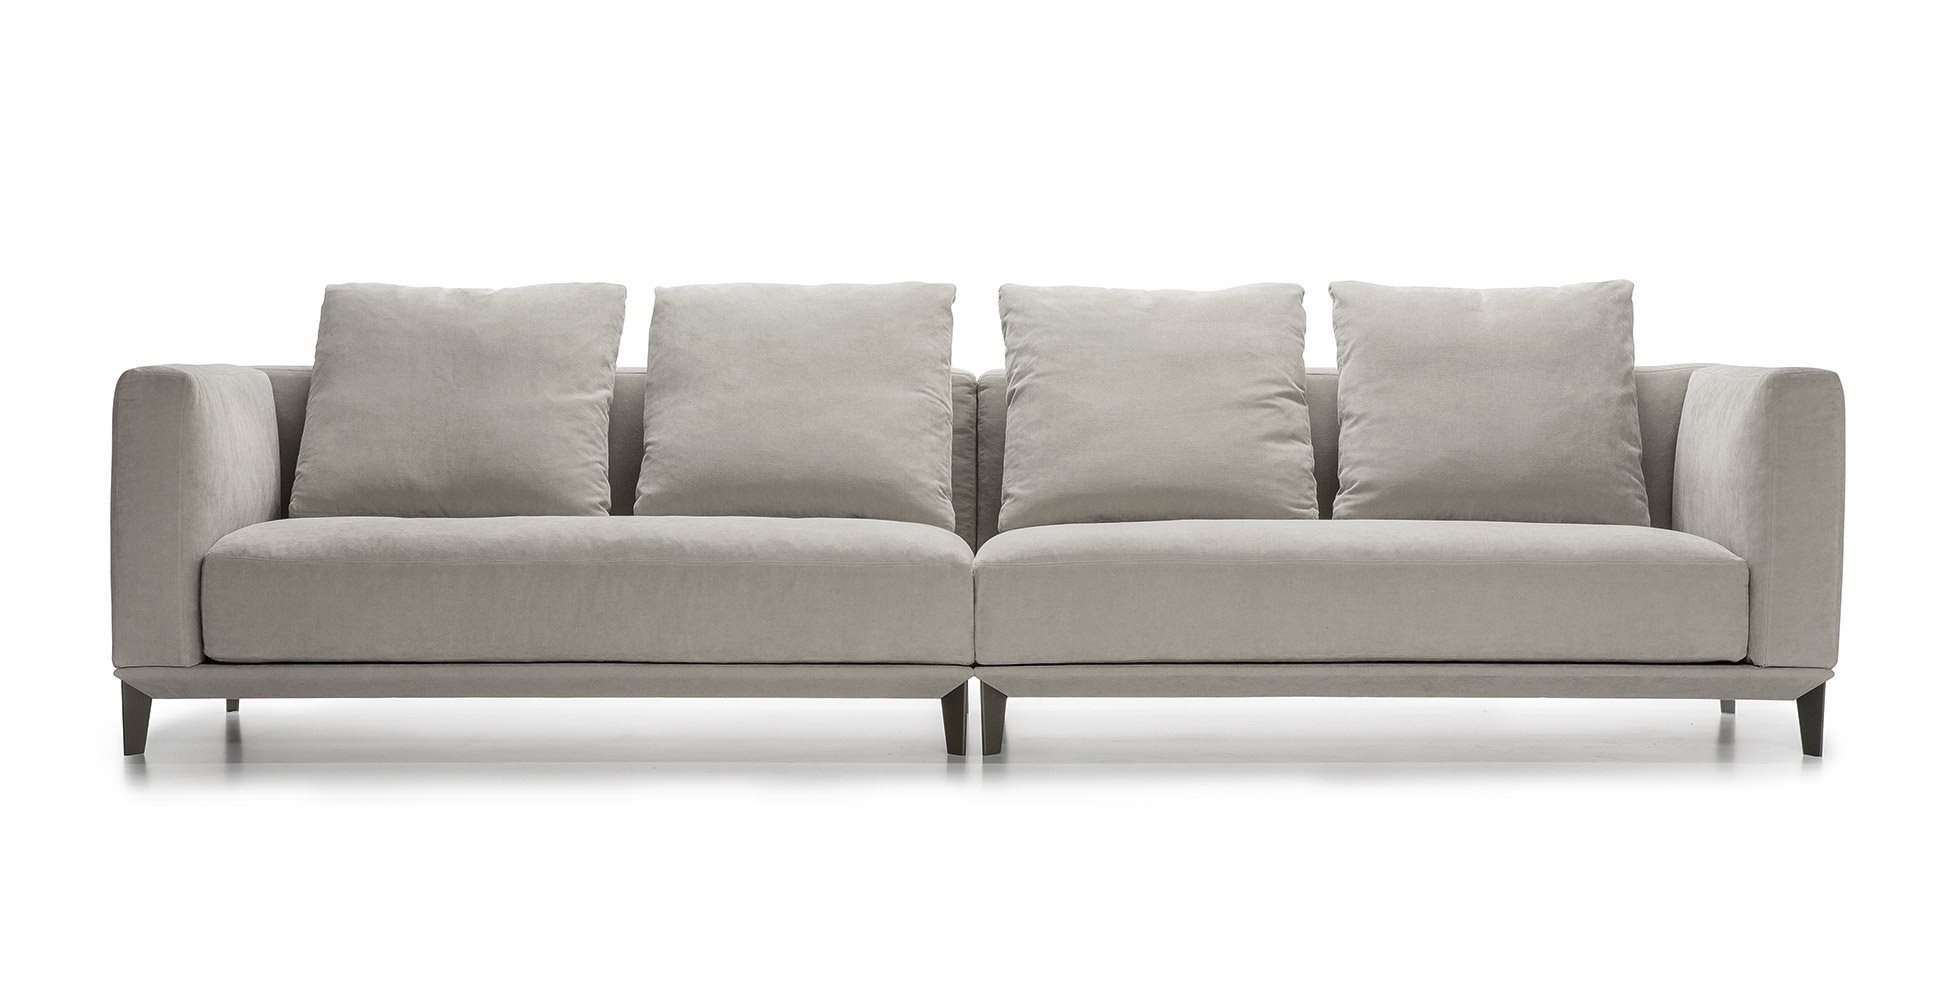 Four Seater Sofas Sofa Menzilperde Intended For Four Seater Sofas (Image 9 of 15)